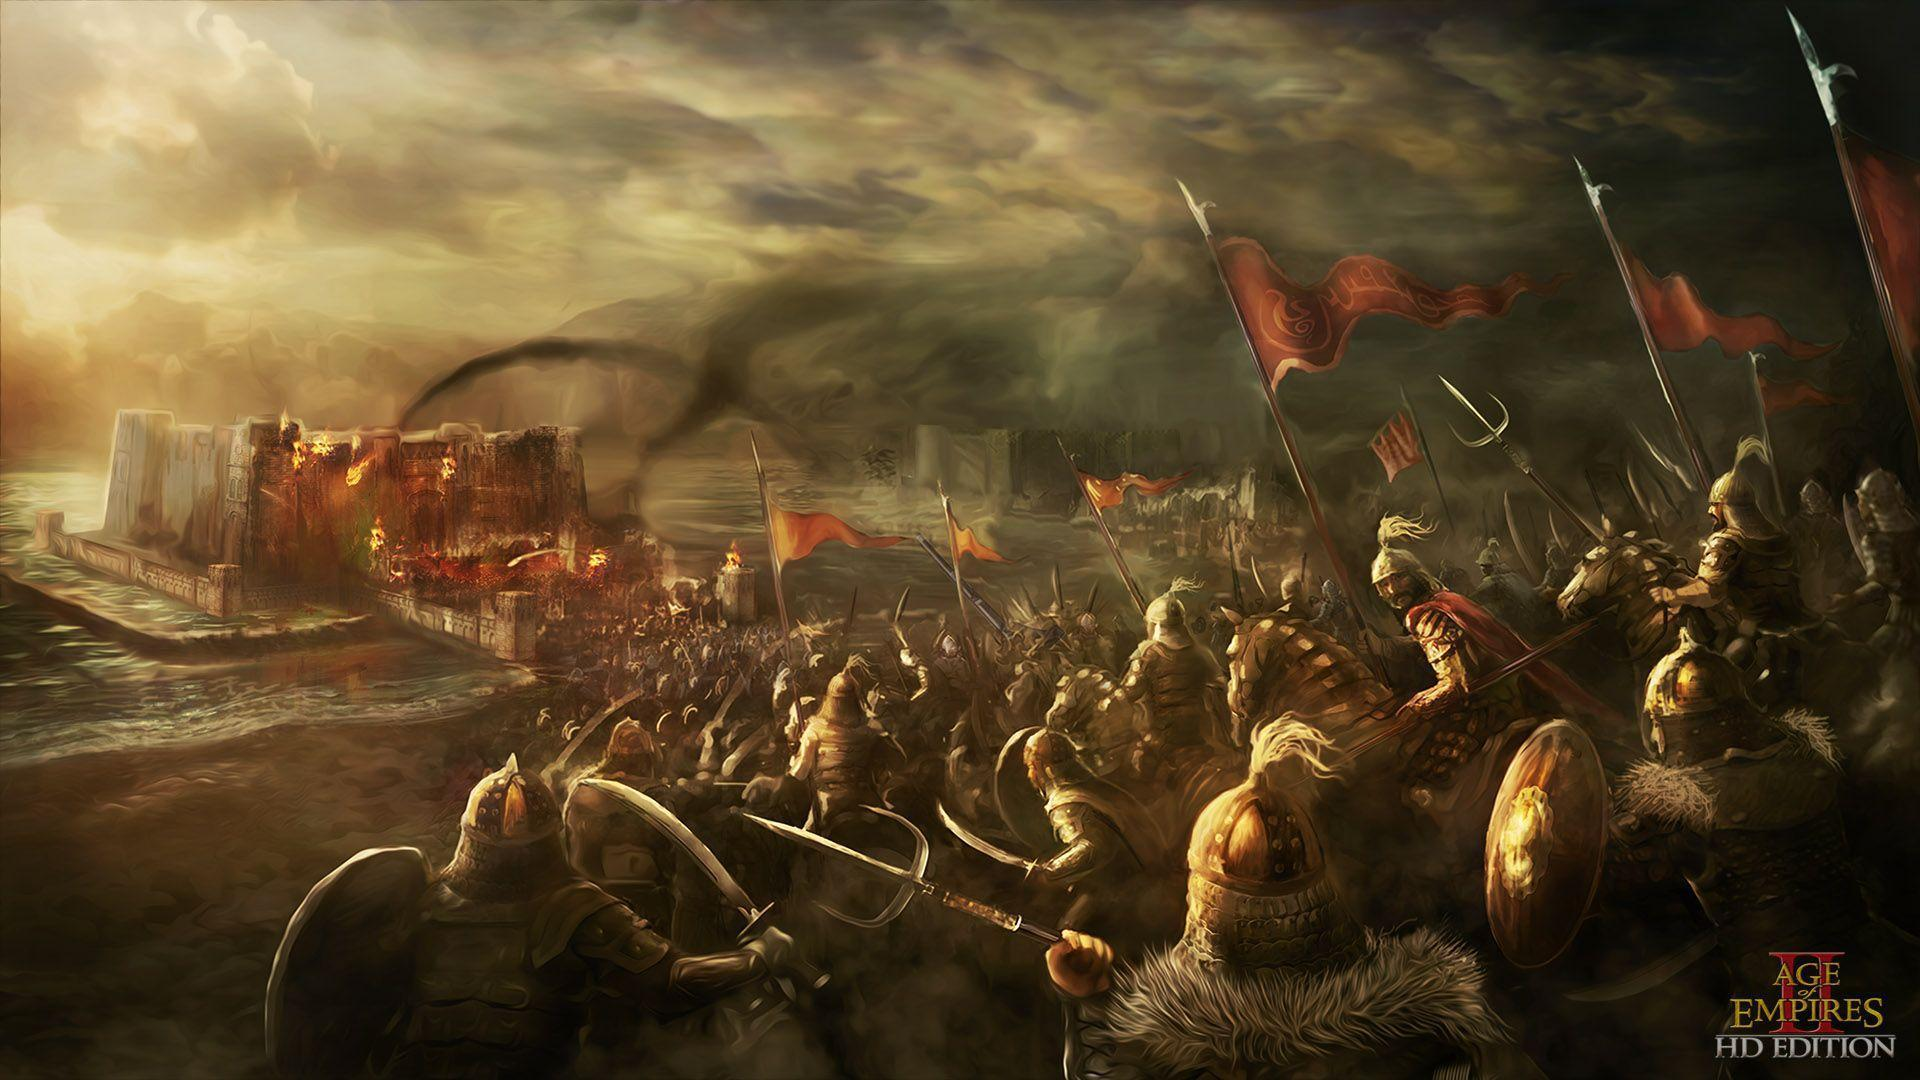 Age Of Empires Game Wallpapers | HD Wallpapers